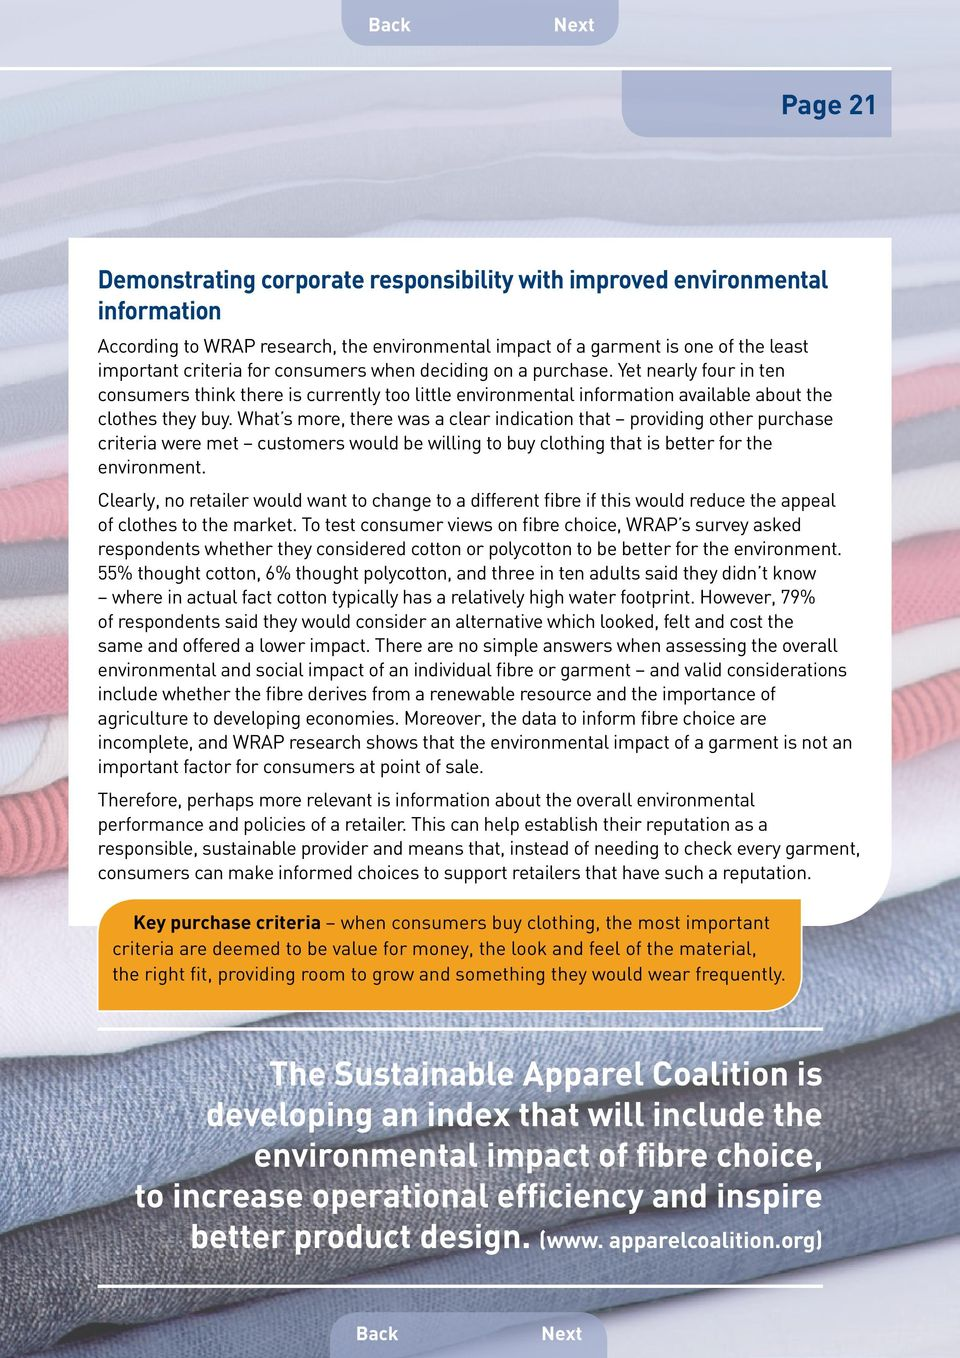 What s more, there was a clear indication that providing other purchase criteria were met customers would be willing to buy clothing that is better for the environment.